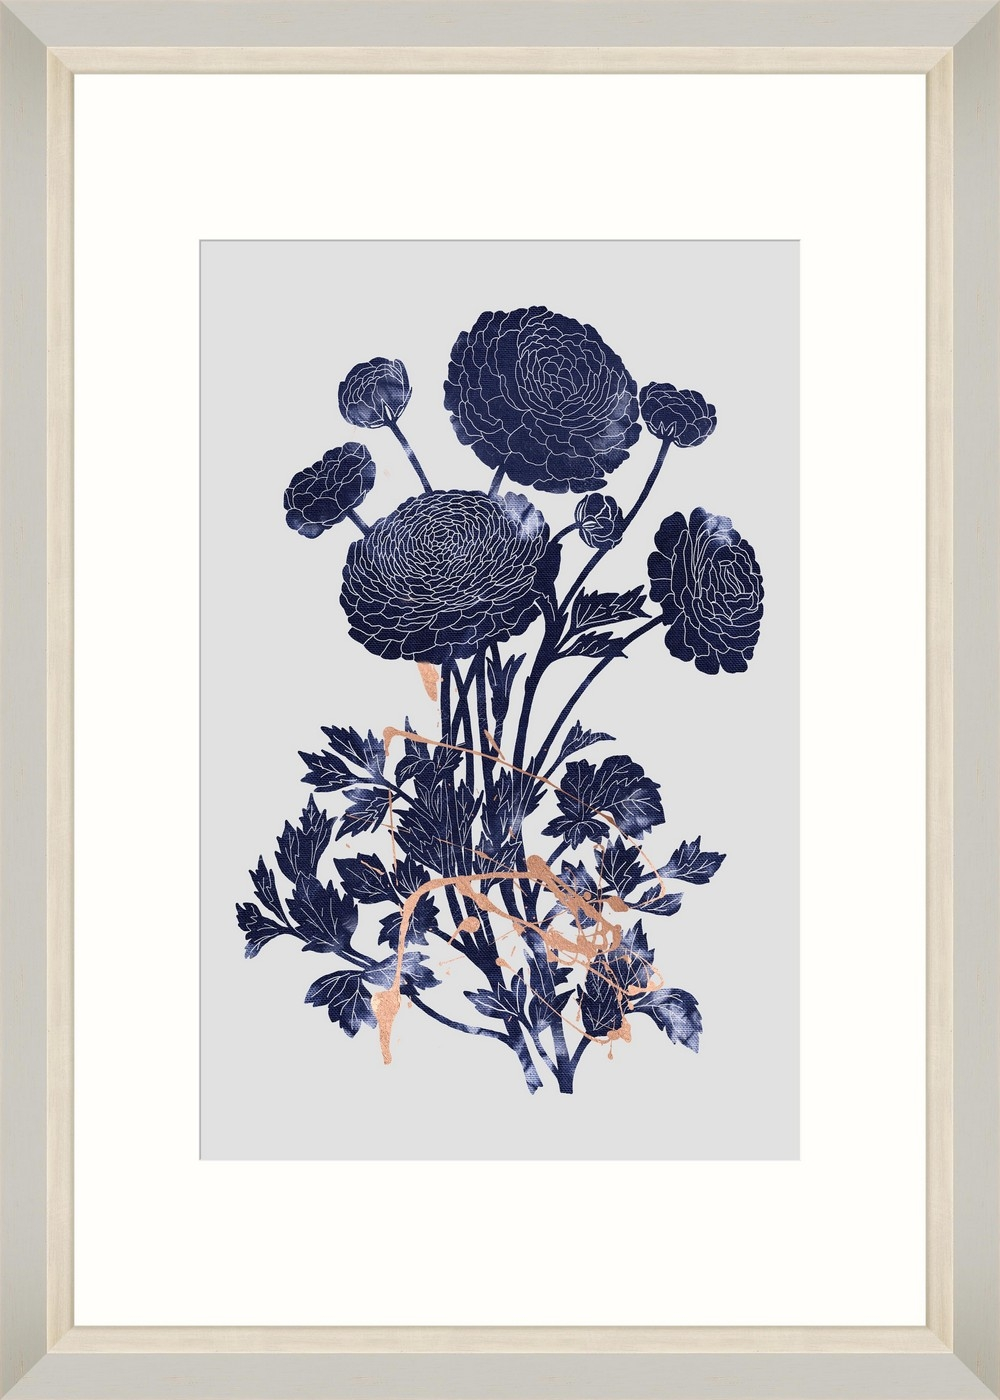 Tablou Framed Art Indigo Ranunculus imagine